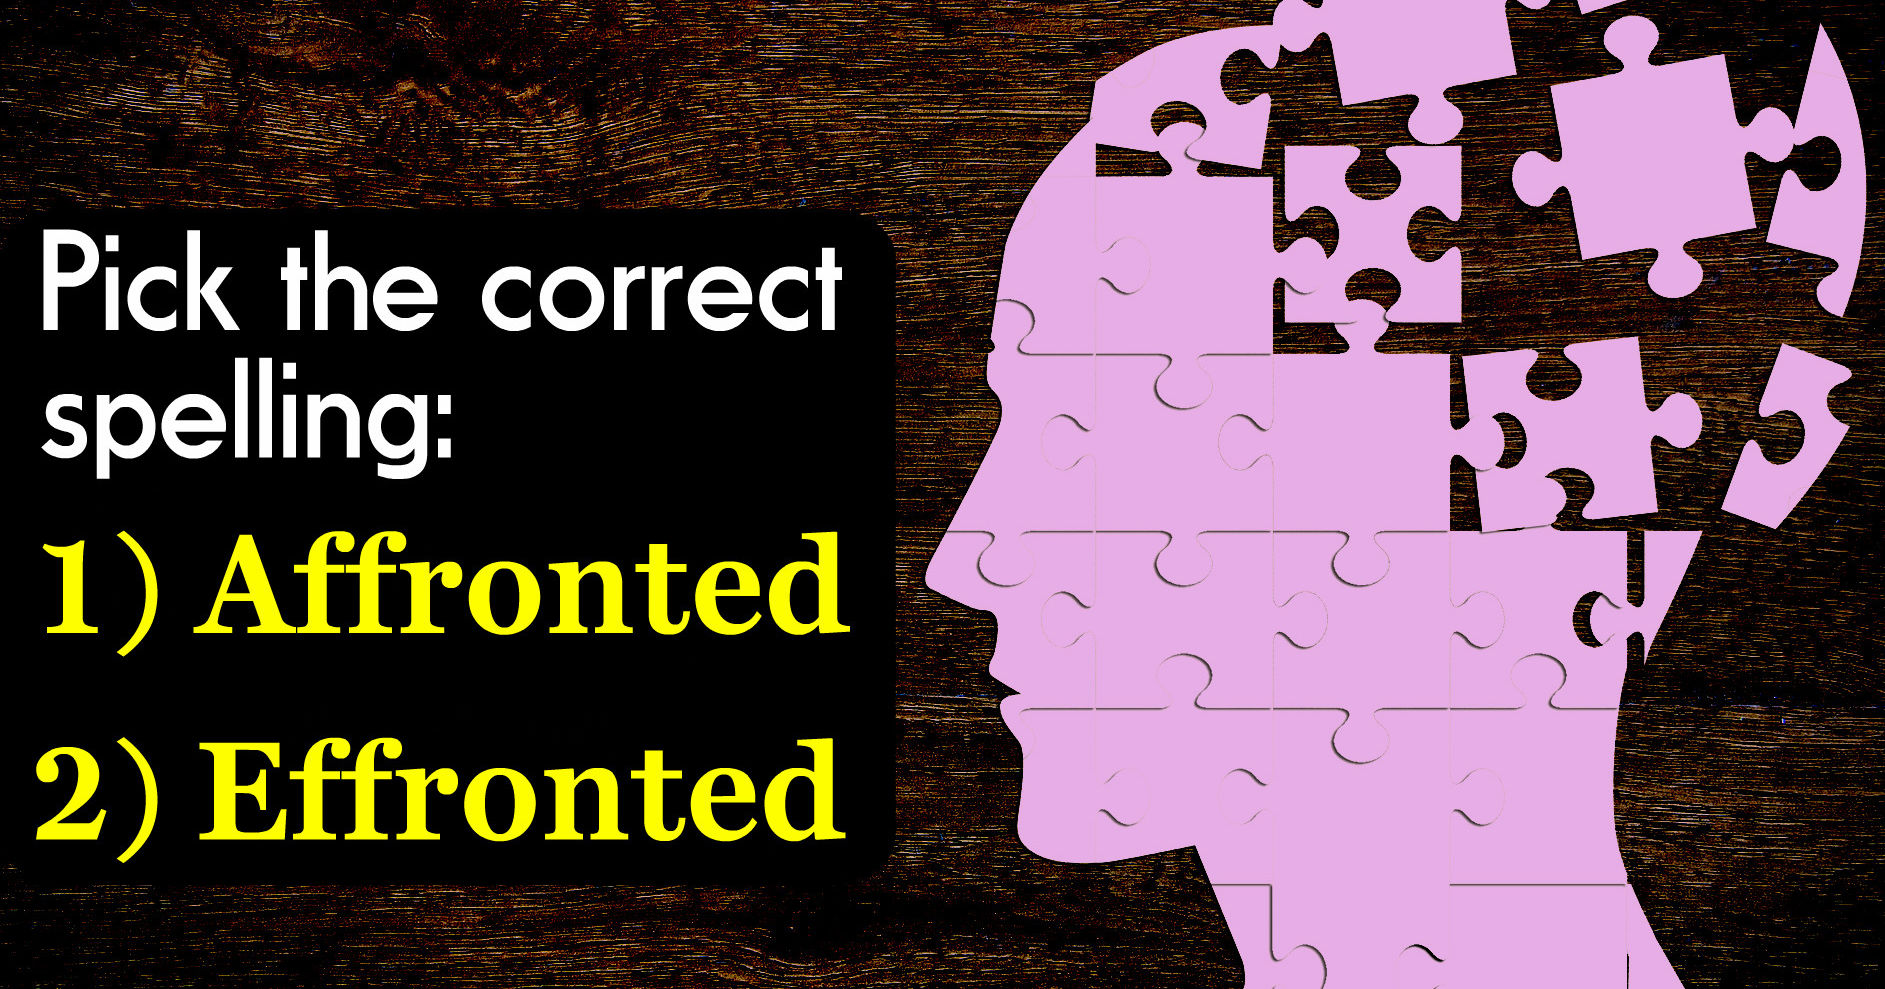 Only Emotionally Intelligent People Passed This Spelling Test